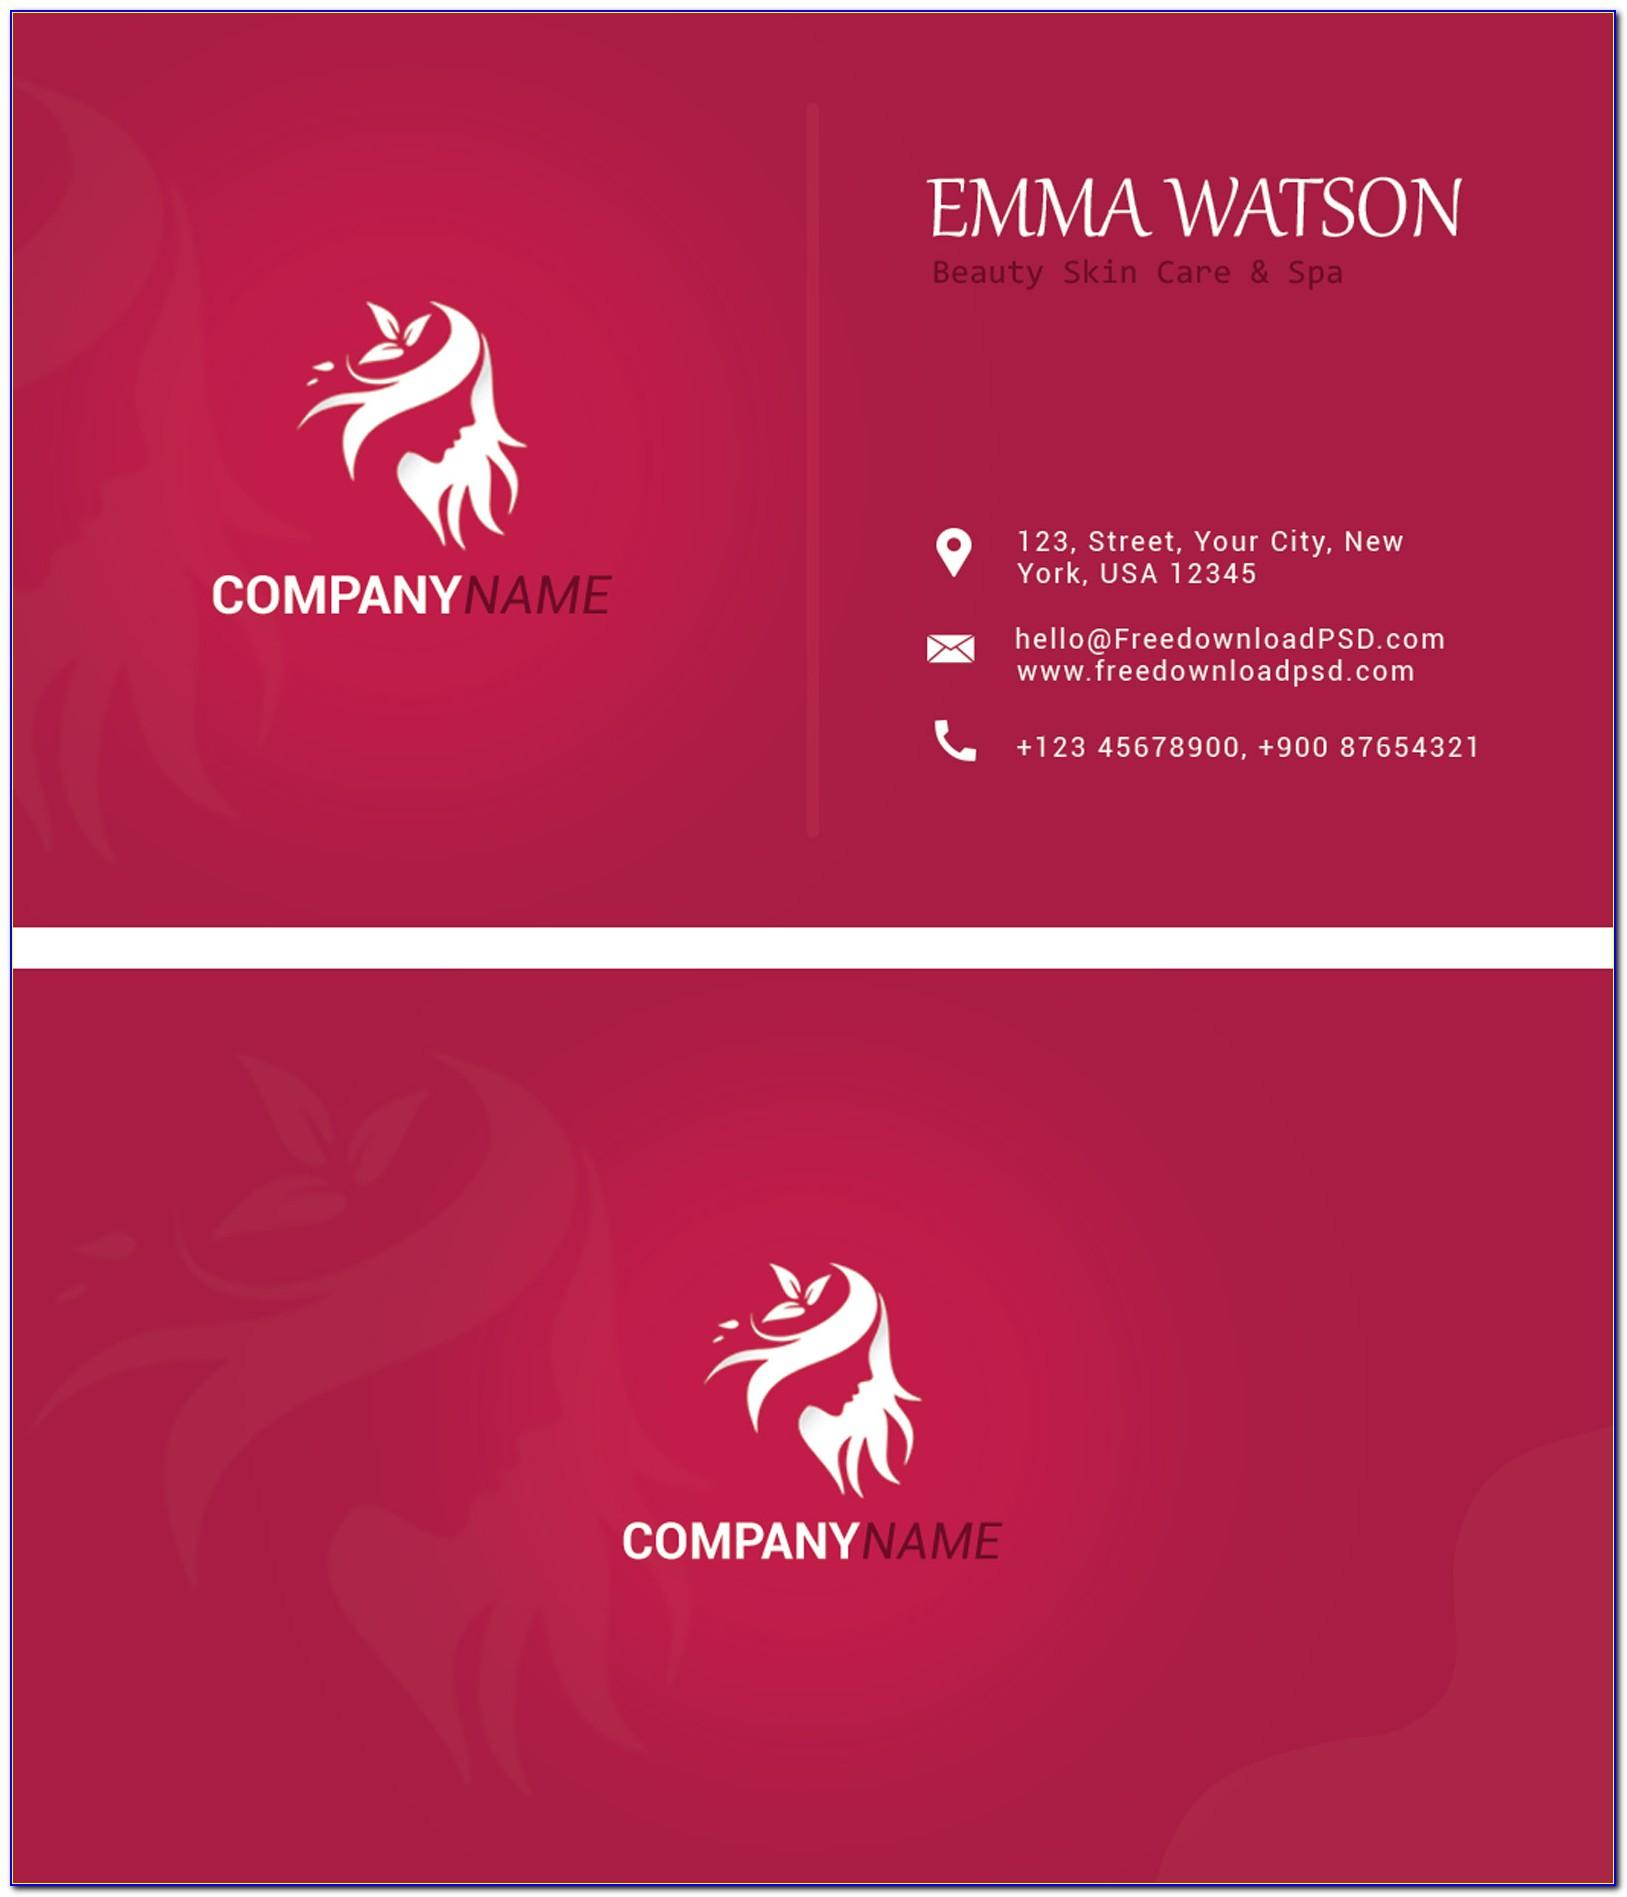 Business Cards Online 1000